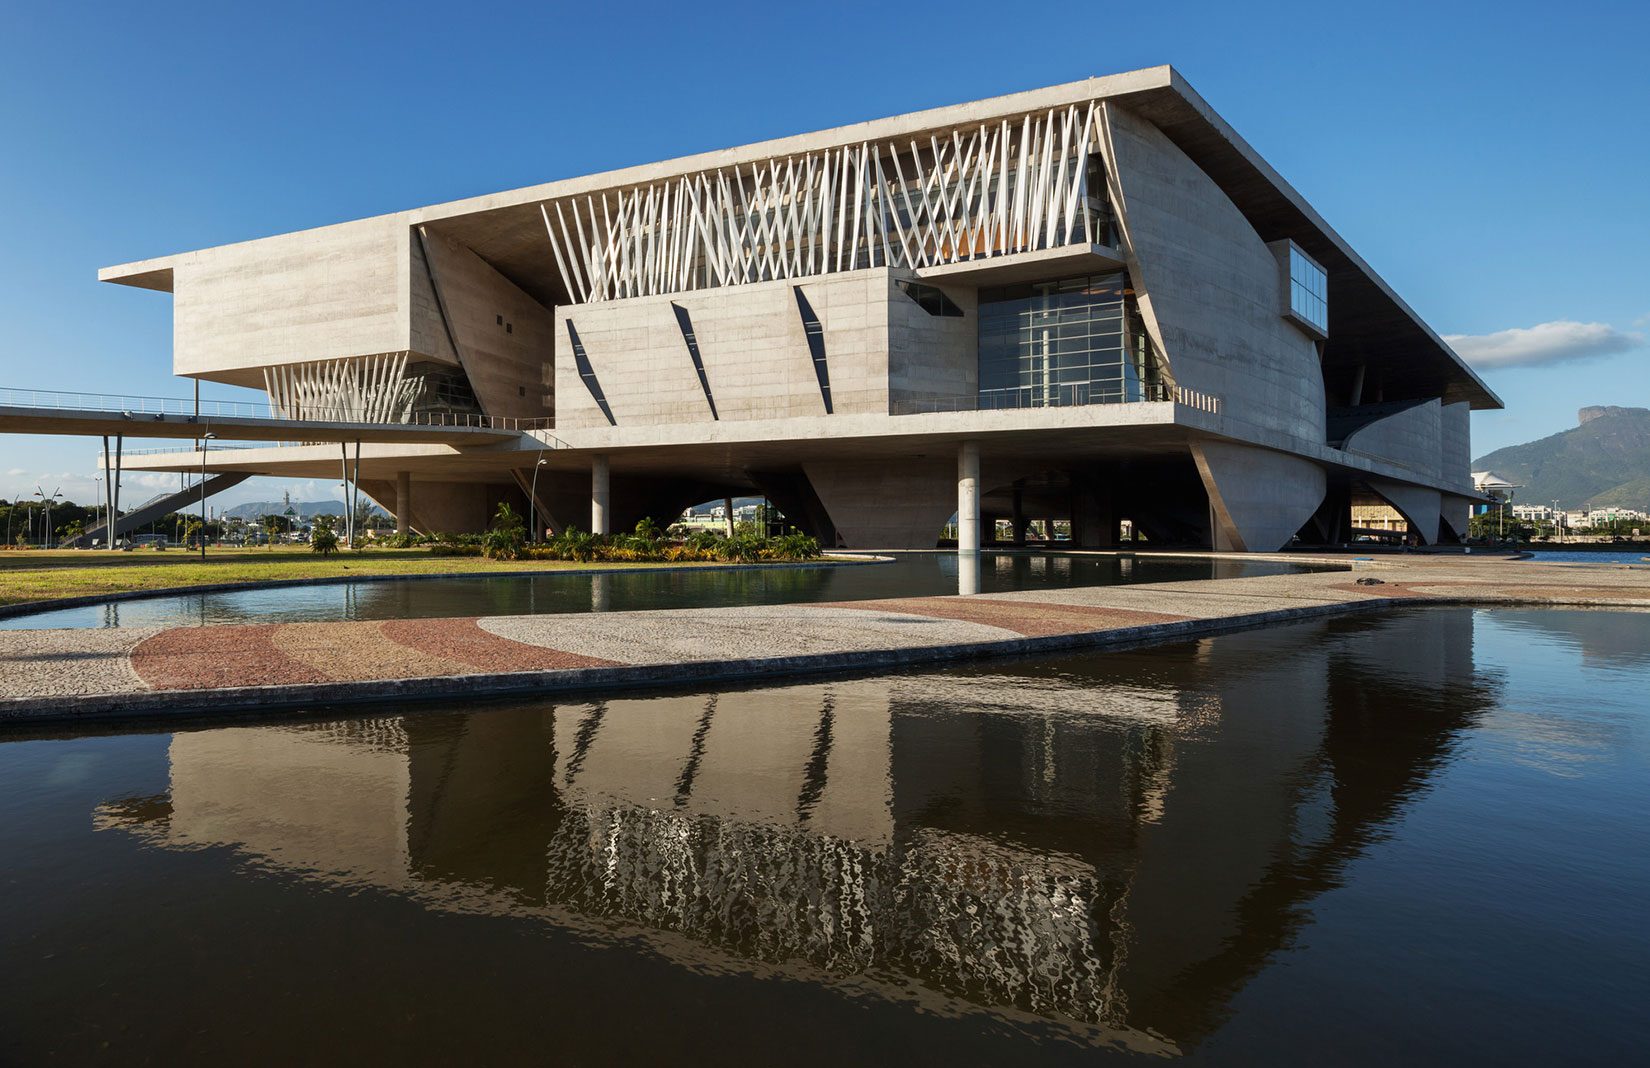 Japan house was set up base inside the Cidade das Artes, a 2013 concrete arts complex designed by French architect Christian de Portzamparc. Its national house offers a dose of Japanese culture – from traditional tea ceremonies to folk entertainment – as well as a preview of things to come in four years' time.